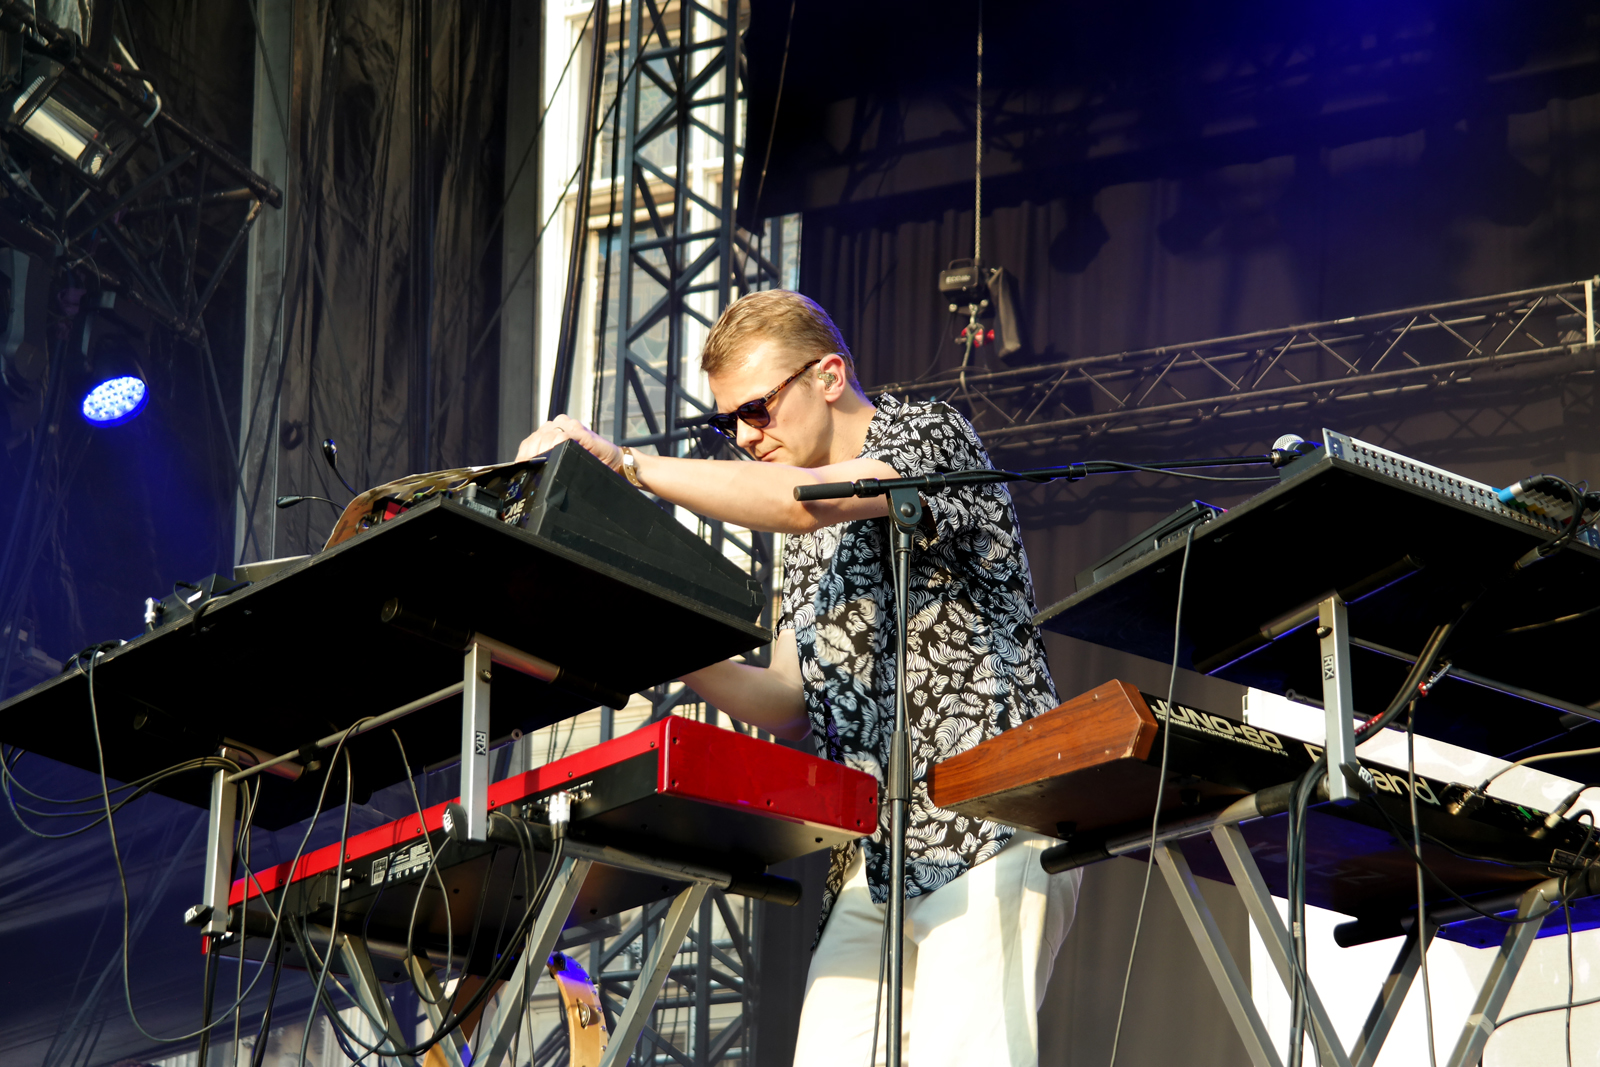 Tommy-Grace-Django-Django-synthesizer-operator-claviers-live-fnaclive-2015-concert-album-born-under-saturn-tour-stage-photo-by-united-states-of-paris-blog